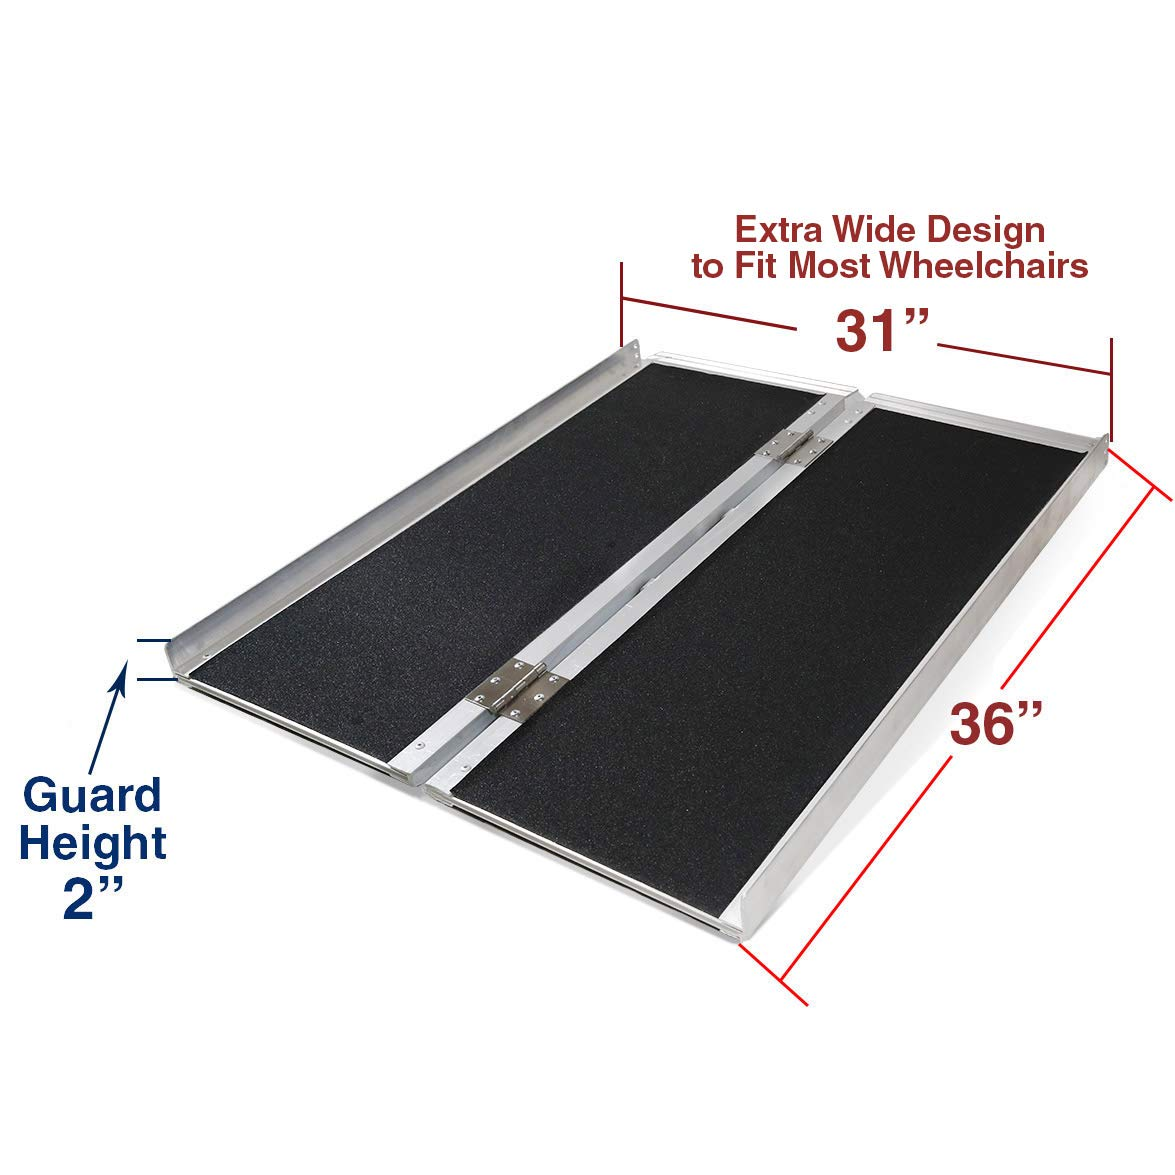 Clevr 3' (36'' X 31'') Non-Skid Aluminum Wheelchair Loading Traction Ramp, Lightweight Folding Portable, Single Fold Wheelchair Scooter Ramp, Extra Wide 31'', Holds up to 600 lbs by Clevr (Image #4)